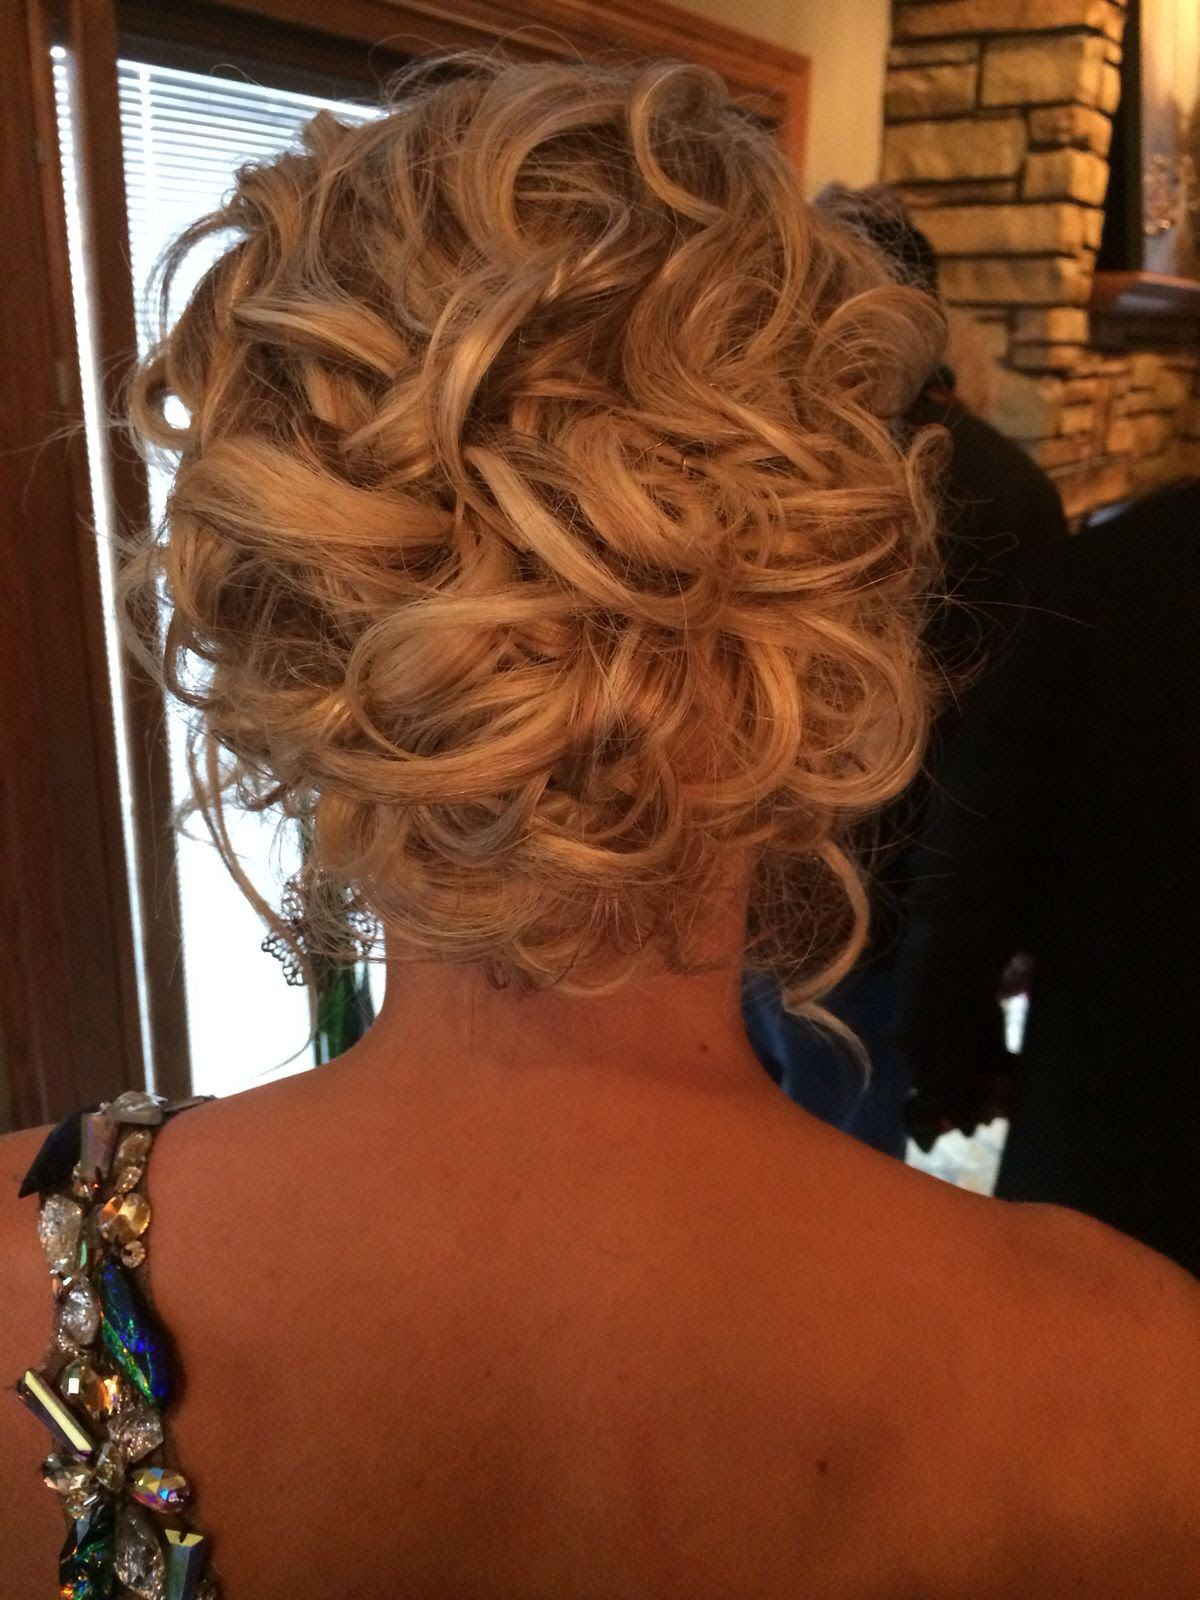 Prom  hair  updo  Hairstyles  Pinterest